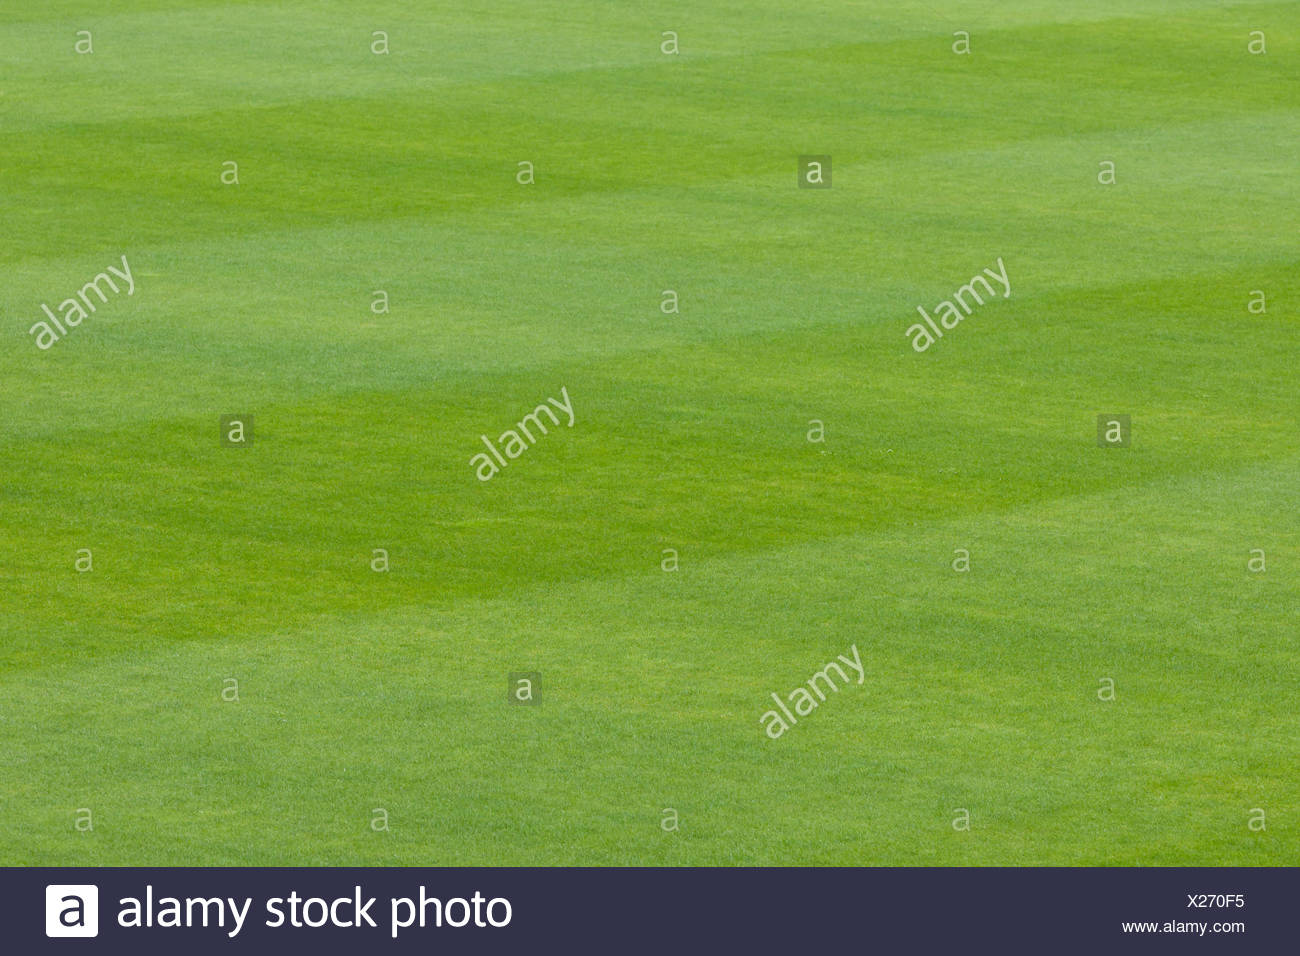 Lush green grass background - Stock Image